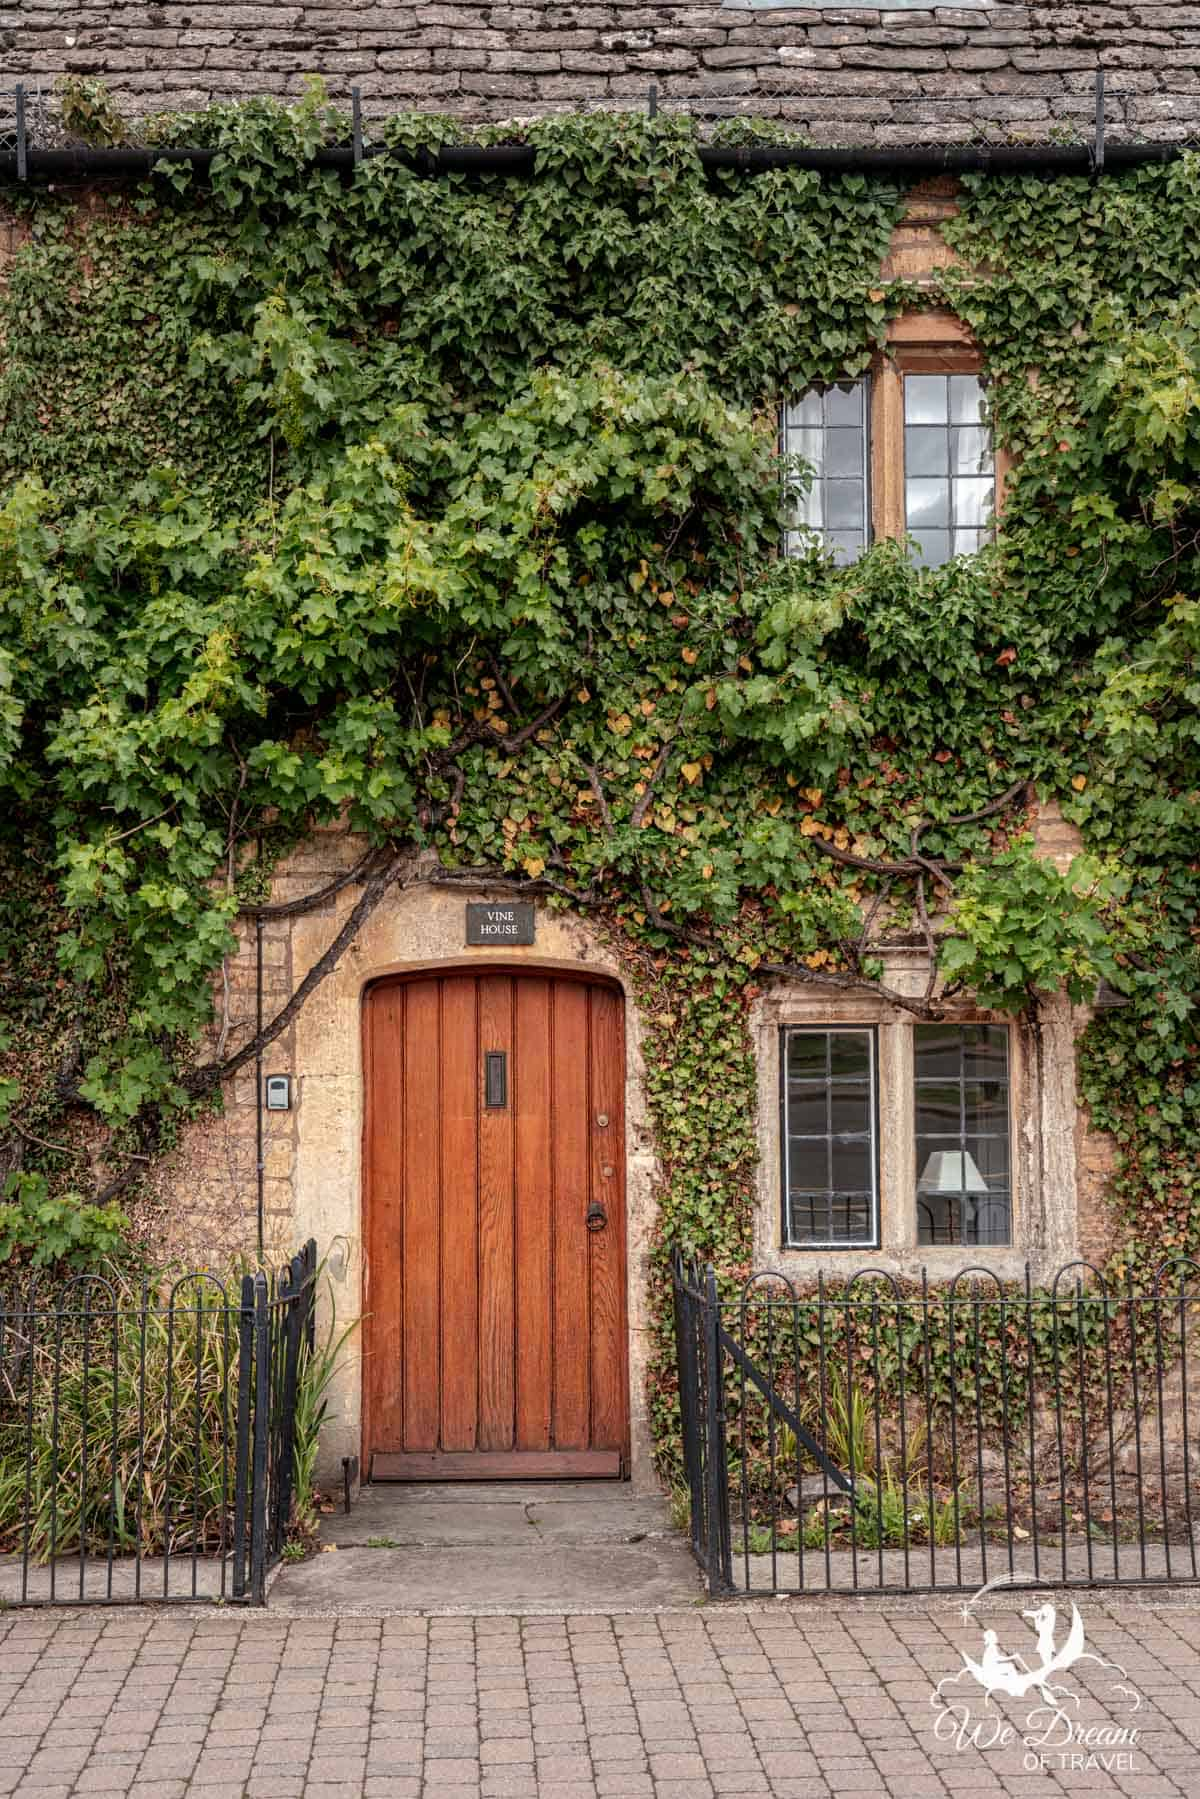 Vine house - a pretty Cotswolds home